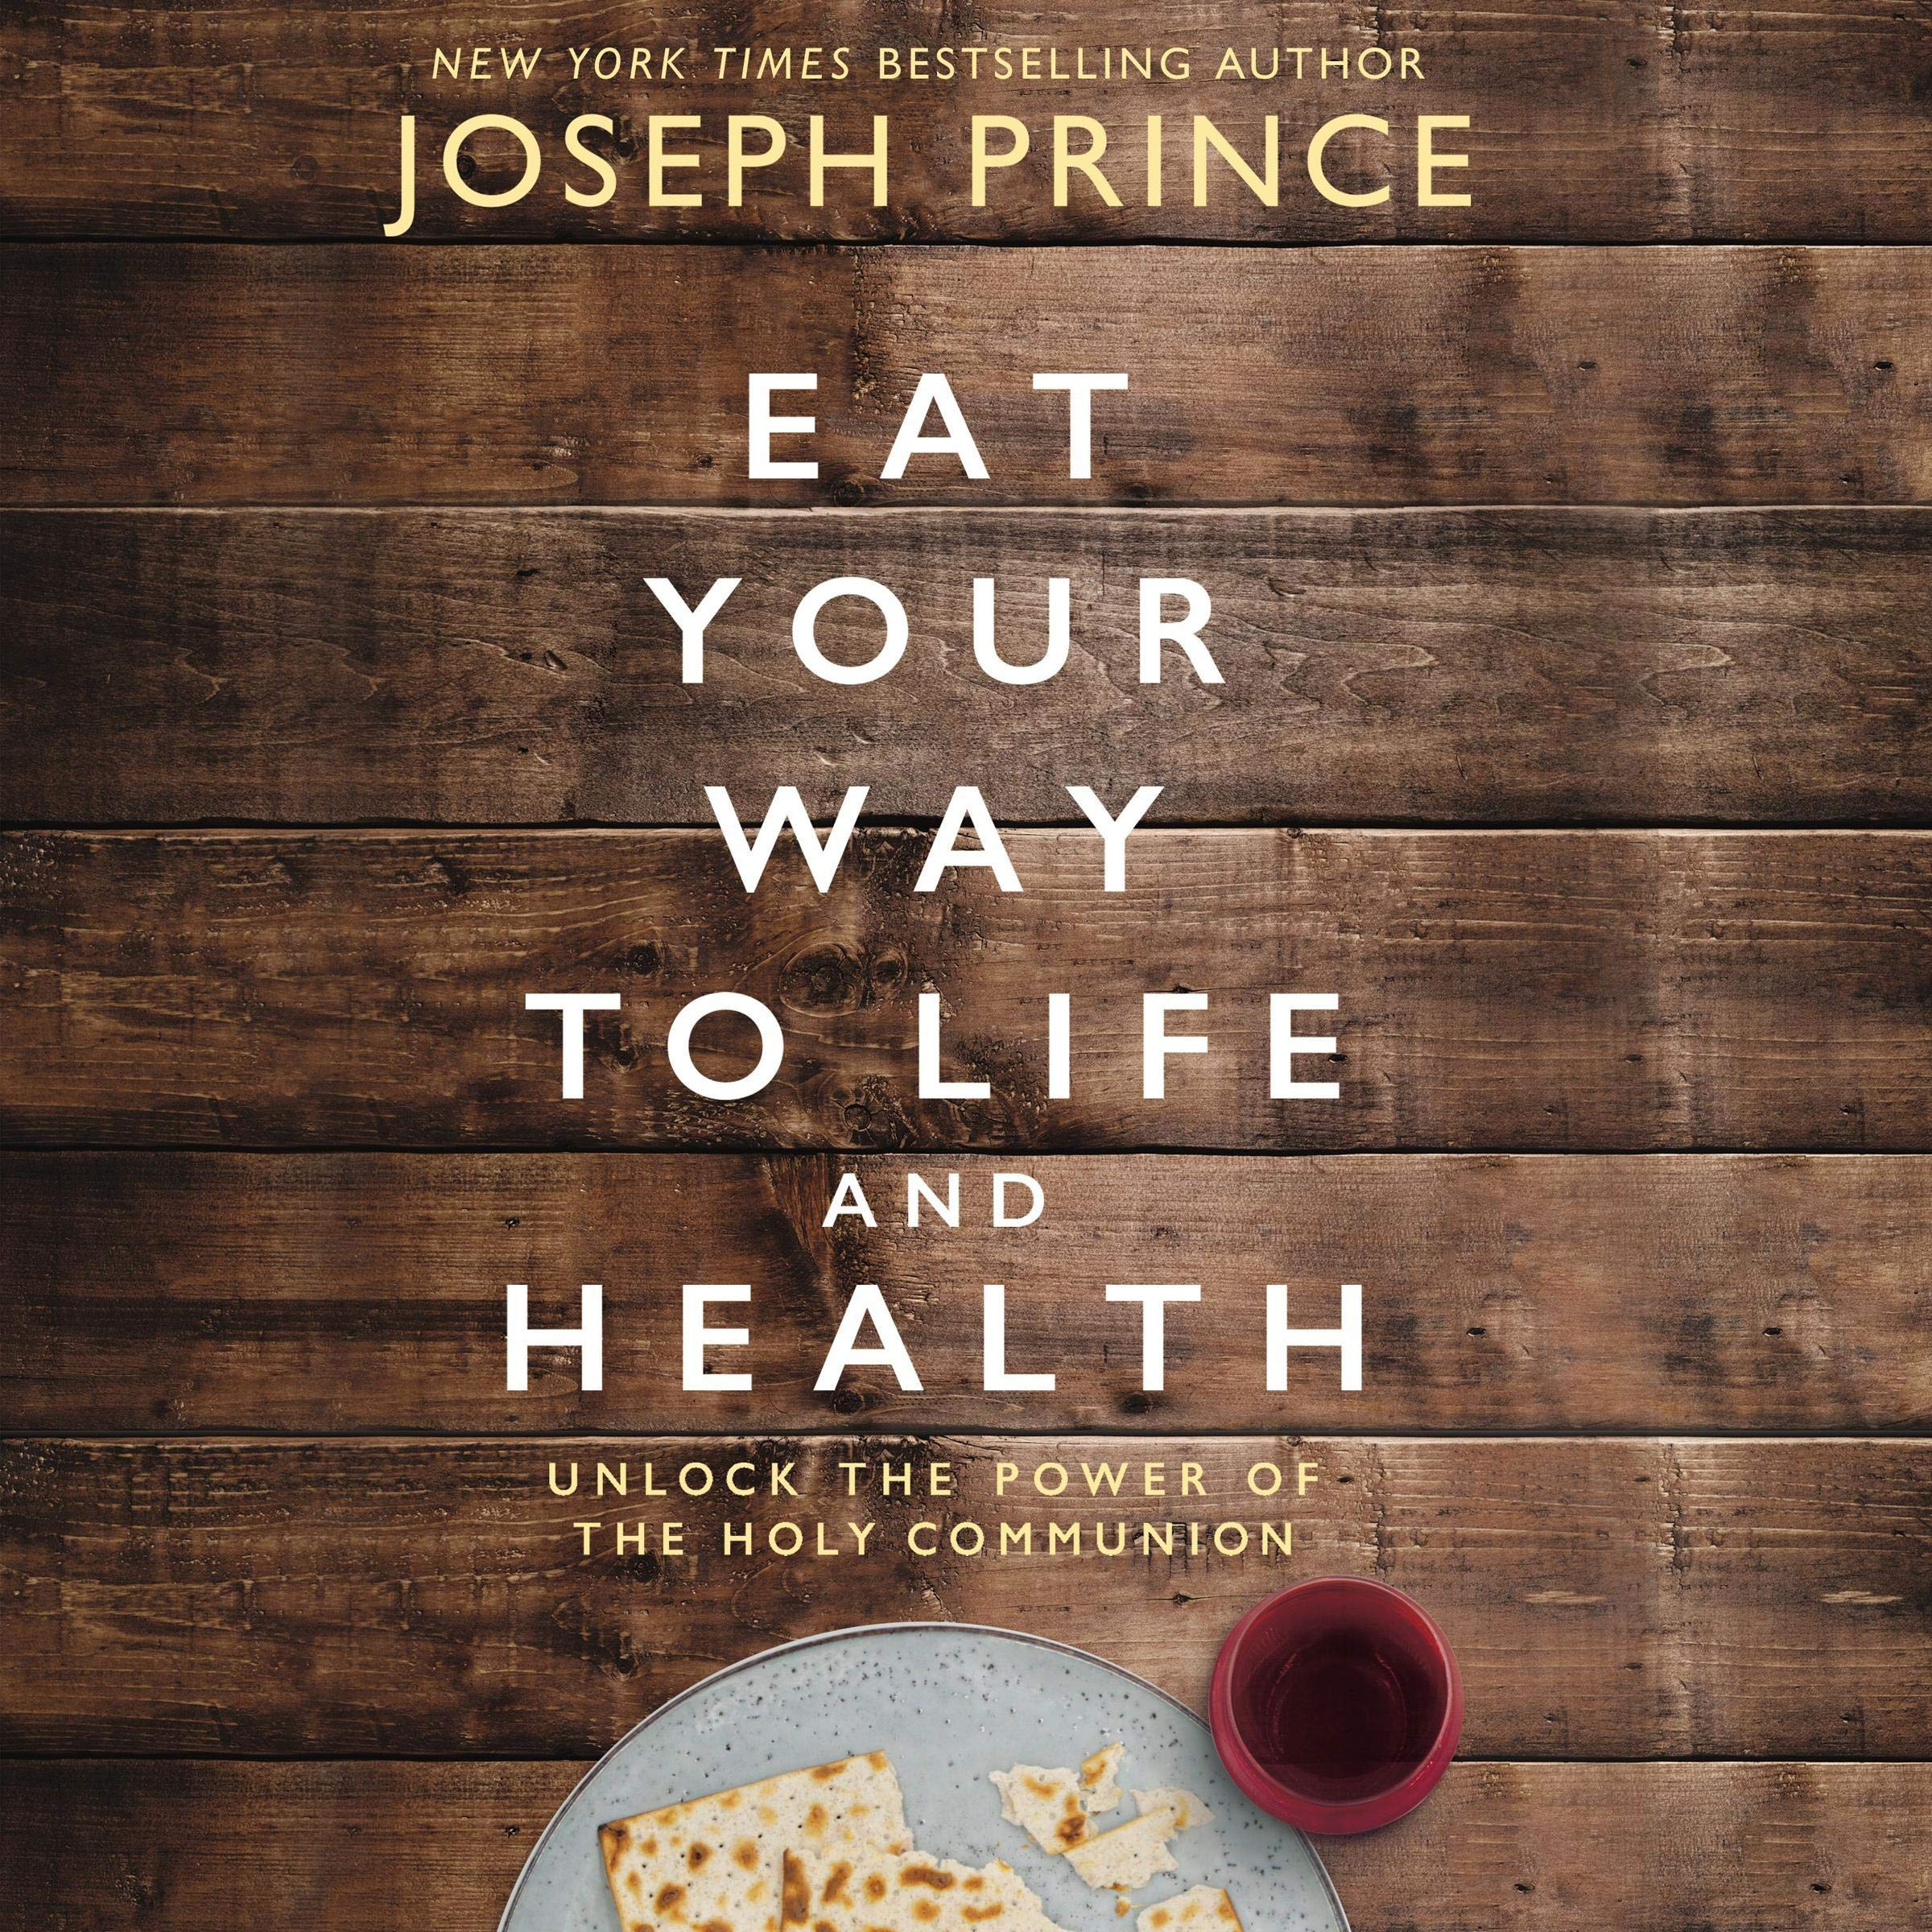 Eat Your Way To Life And Health  Unlock The Power Of The Holy Communion